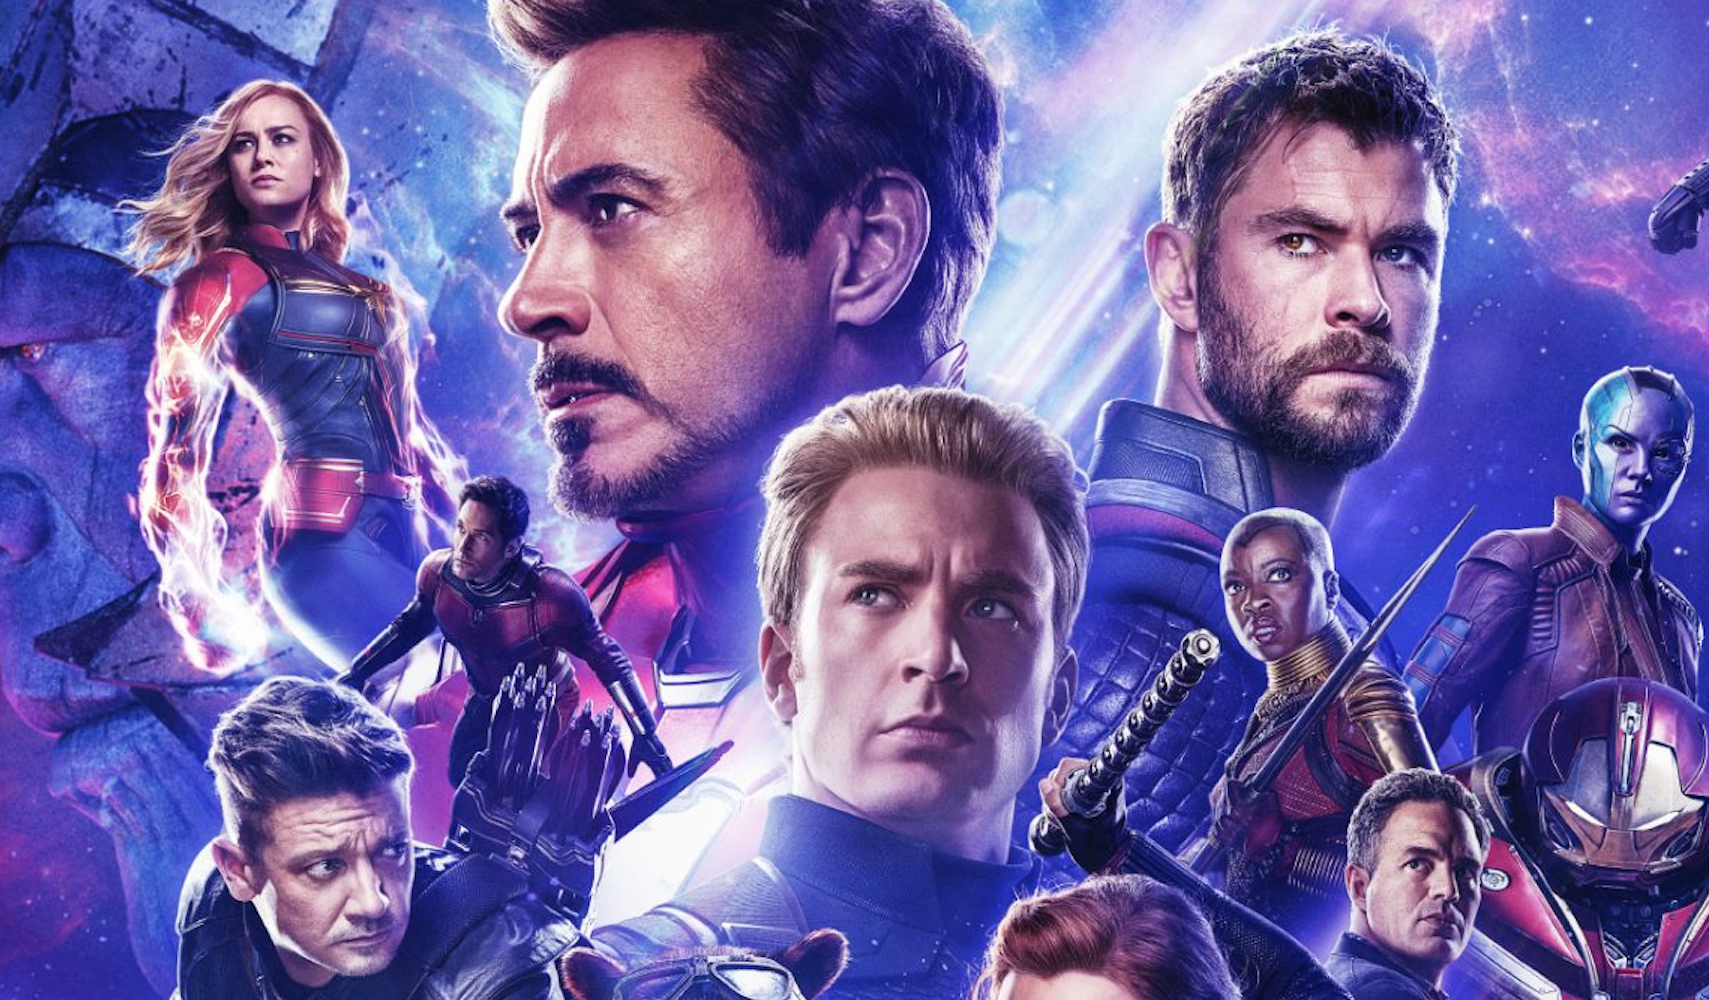 After 'Avengers: Endgame', the MCU Will Be Less White and Male